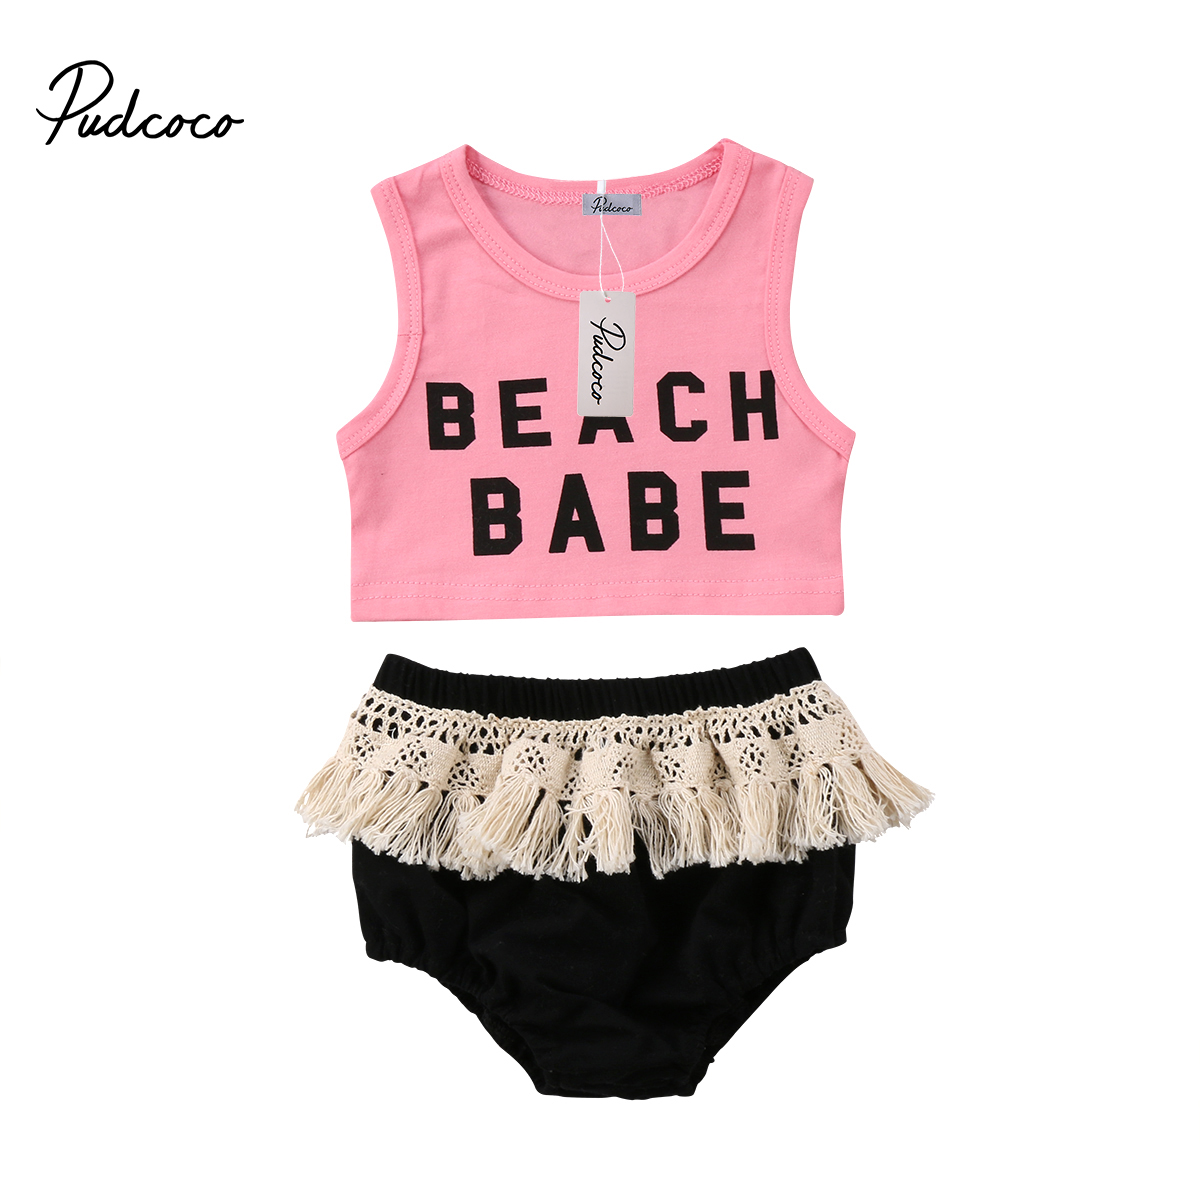 Pudcoco Newborn Kids Baby Girl Clothes Cotton Sleeveless Top T-shirt Short Pants Outfits Set 6M-3Y Helen115 headband casual romper jumpsuit baby girl clothes gold polka dot cotton sleeveless outfits set baby girl 3 6 9 12 18 24 monthes